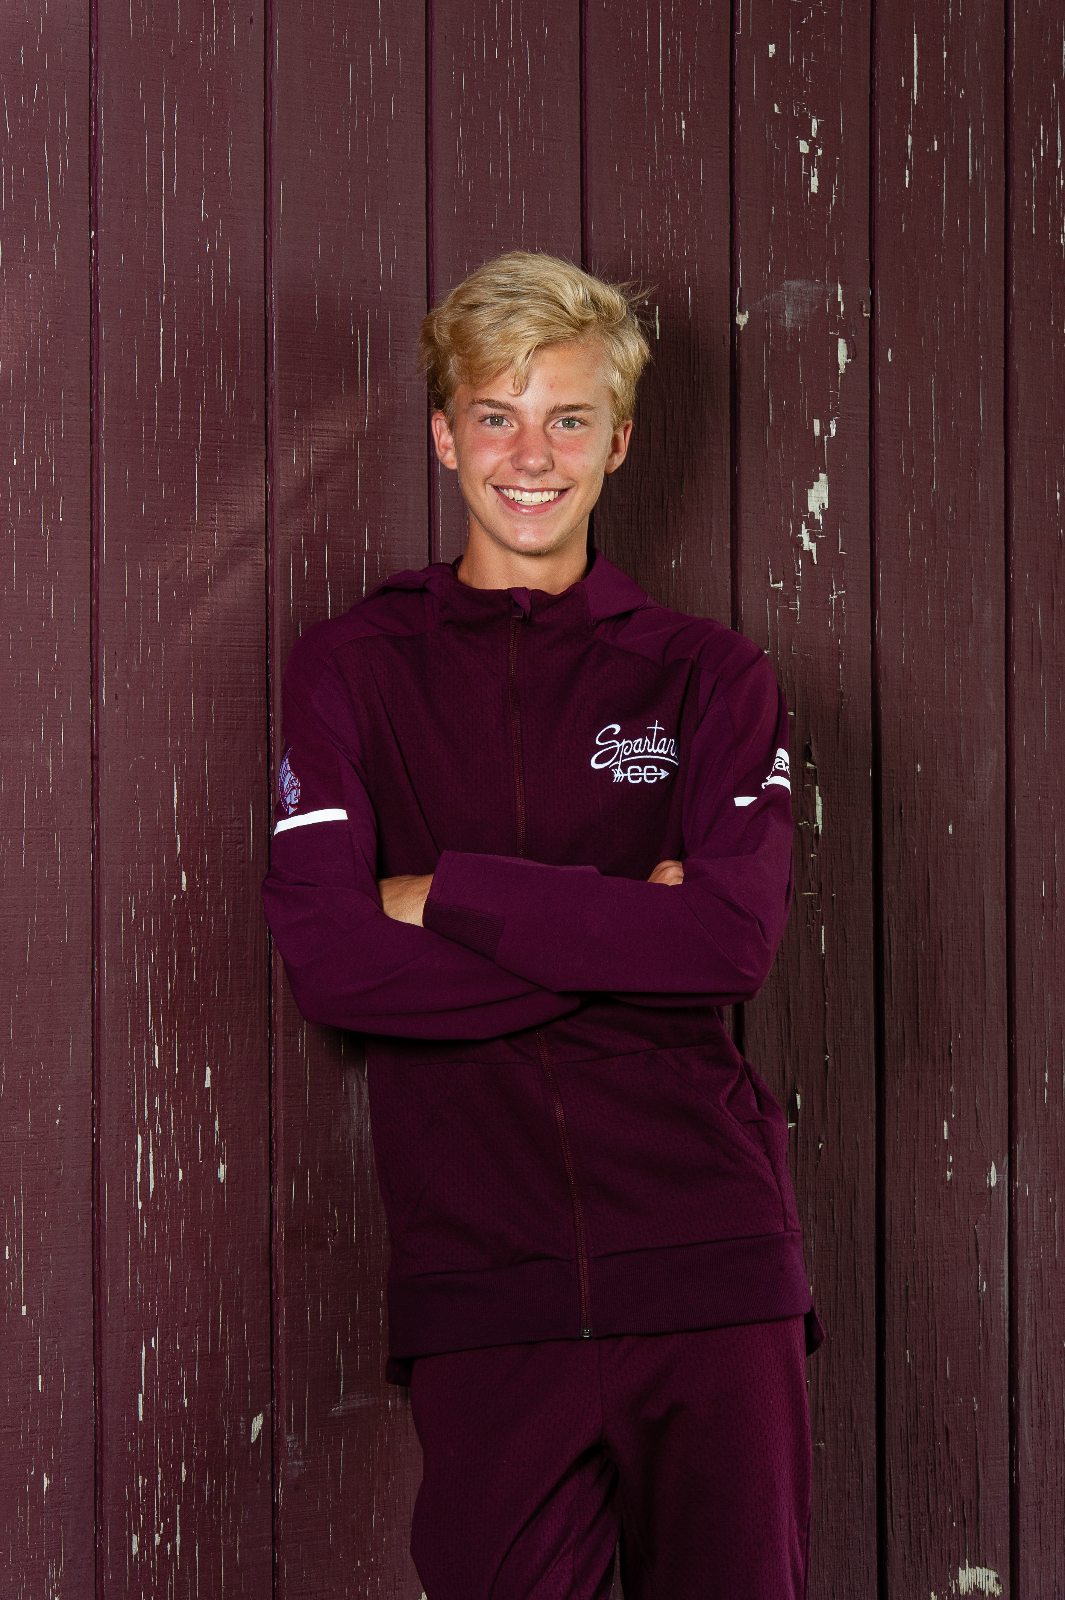 Junior Mitchel Dunham Competes In OHSAA State Cross Country Meet Today At 12:30 P.M.